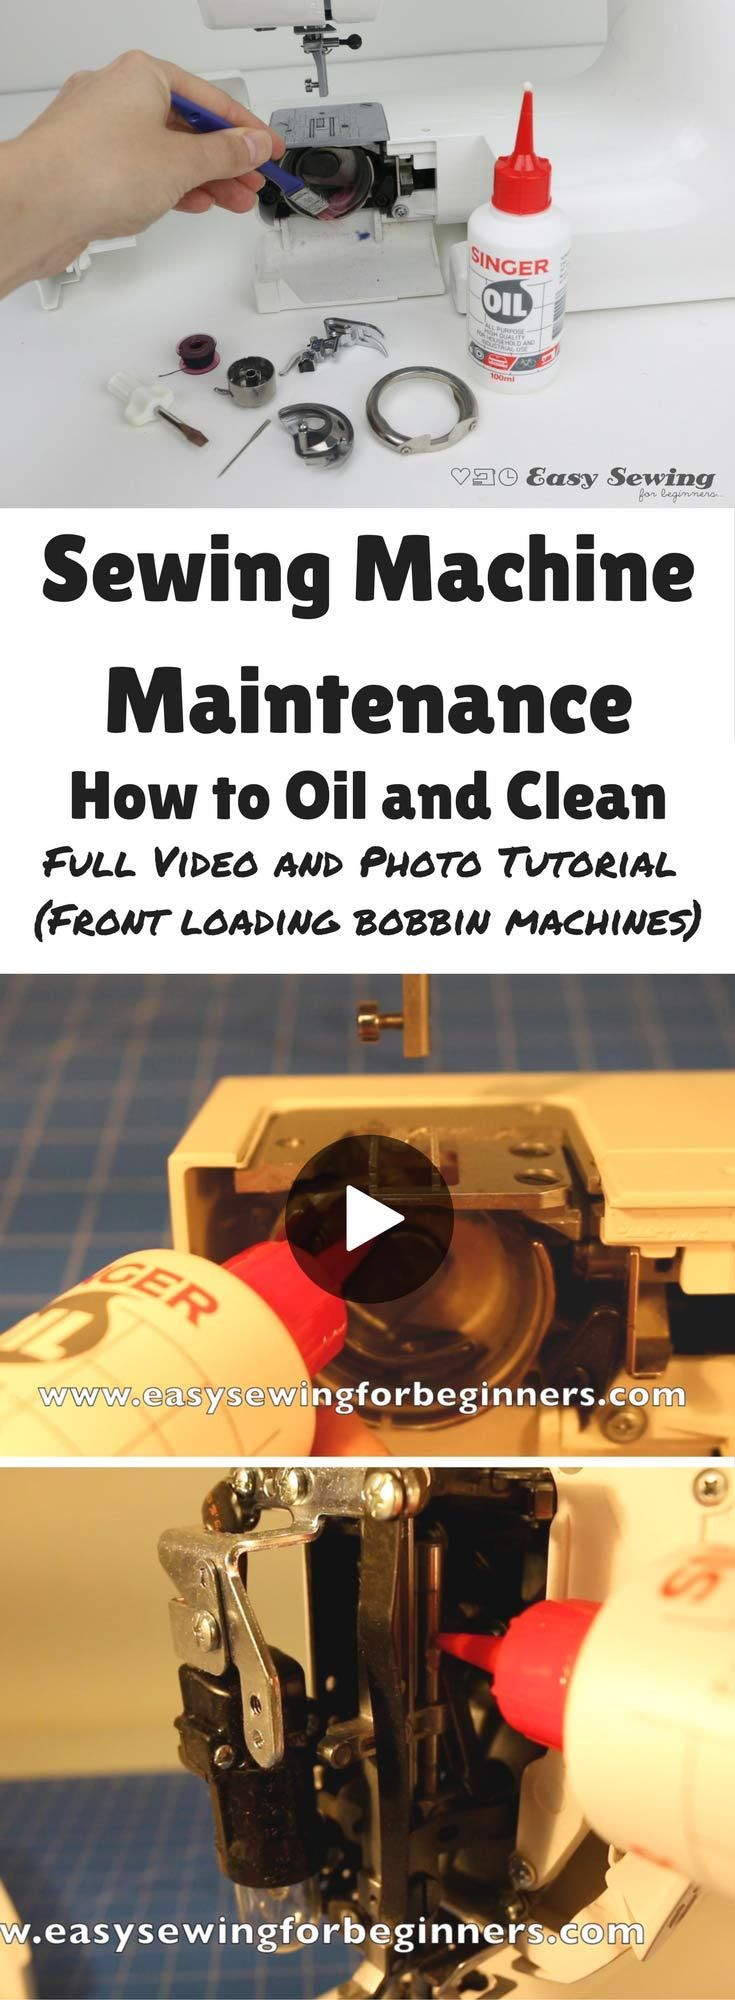 Sewing Machine Maintenance How to Oil and Clean video tutorial for front loading bobbin sewing machines